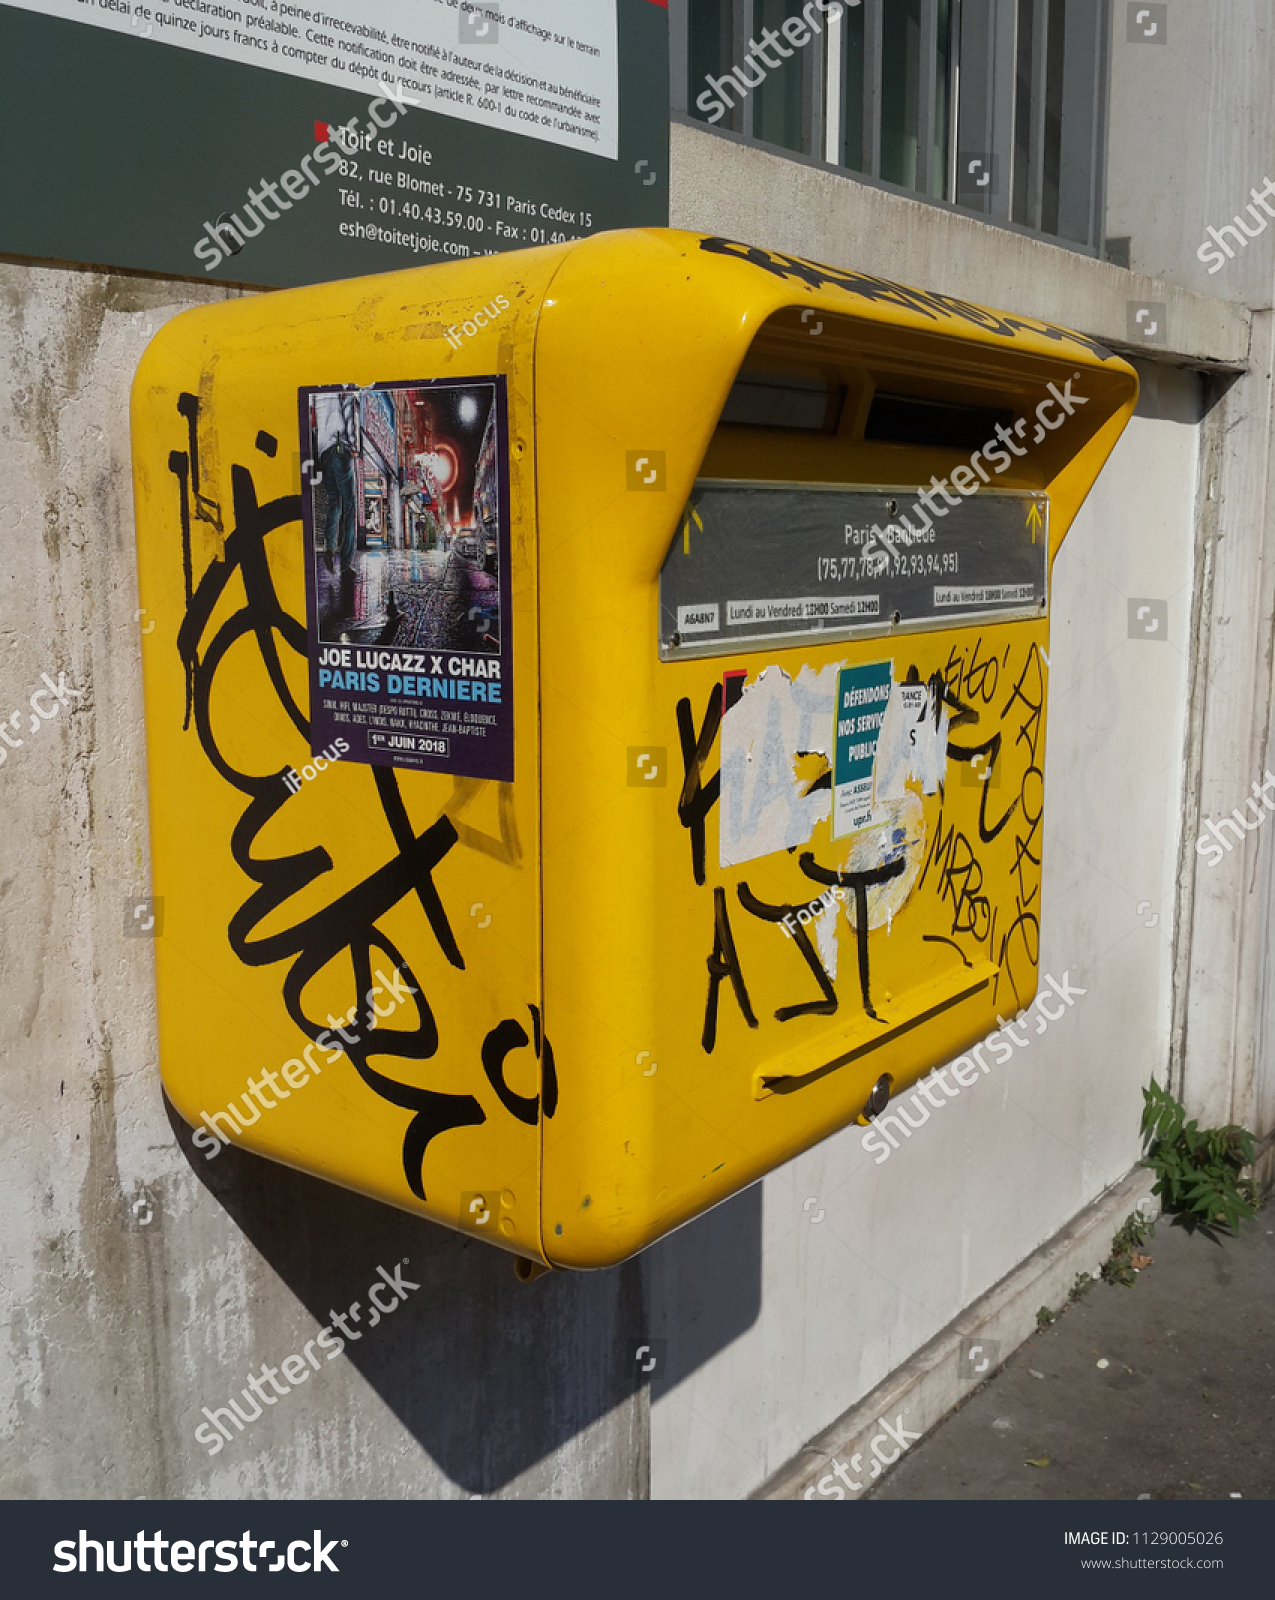 PARIS, FRANCE - JULY 6, 2018: A yellow mailbox at a post office is vandalized on July 6, 2018 in Paris, France.